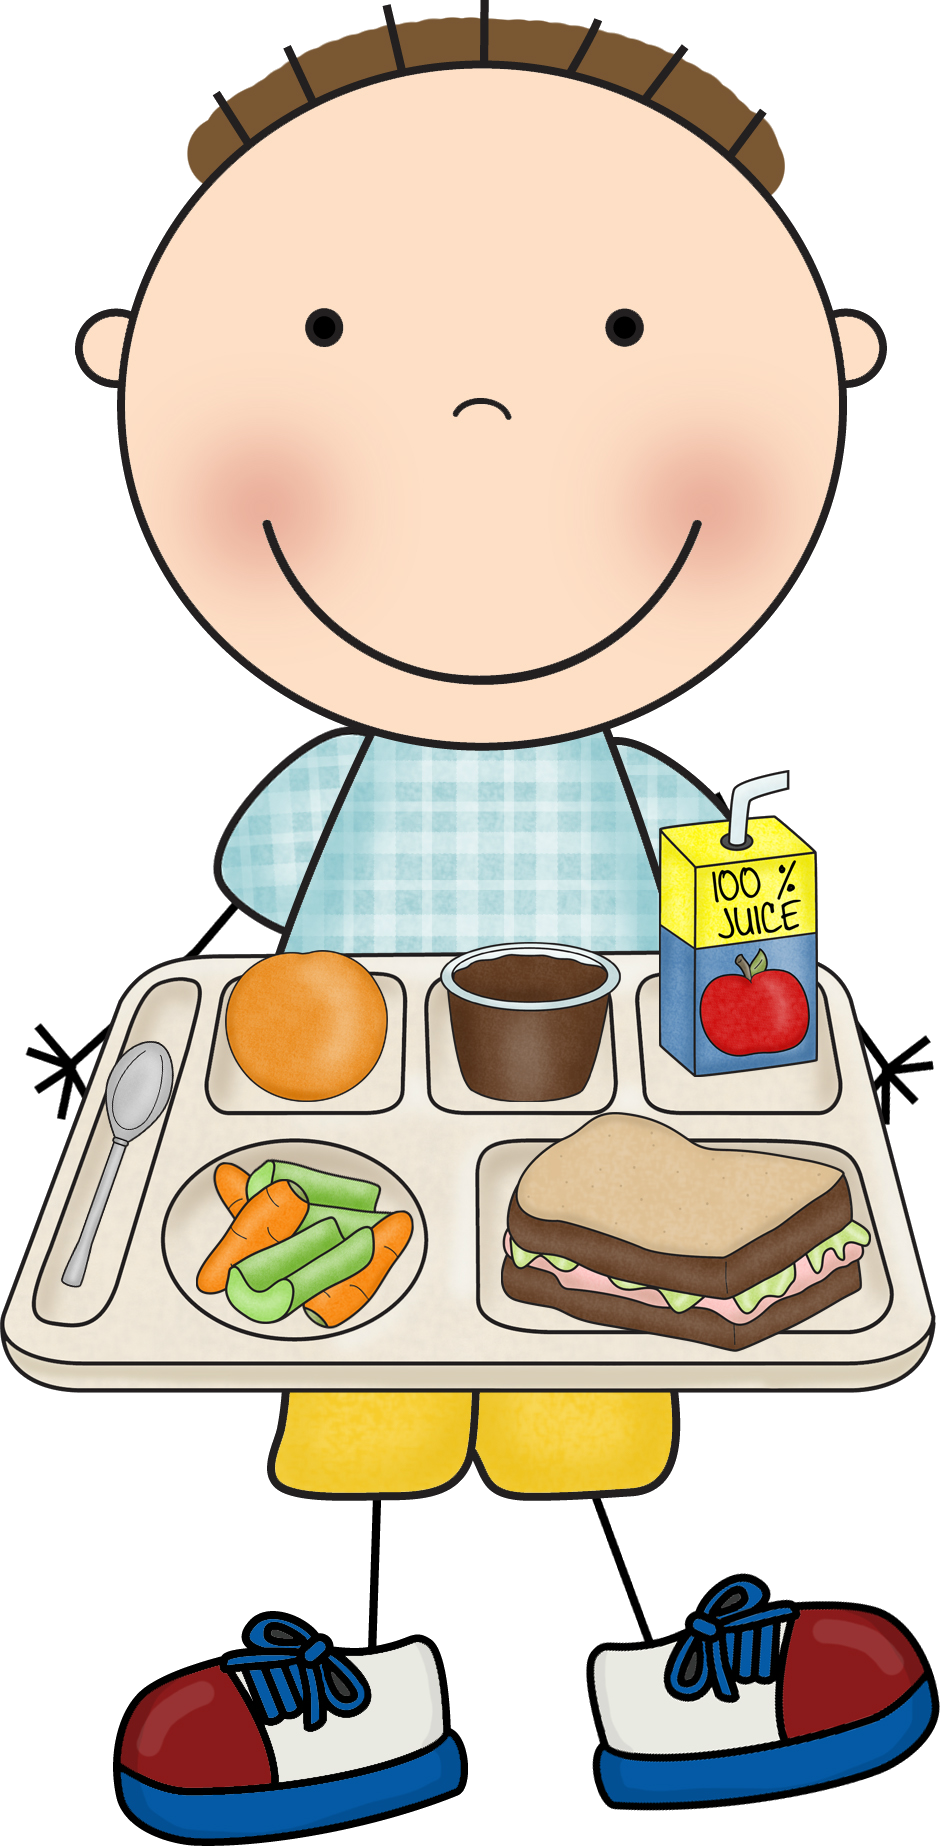 Meal clipart group lunch. For parents image of